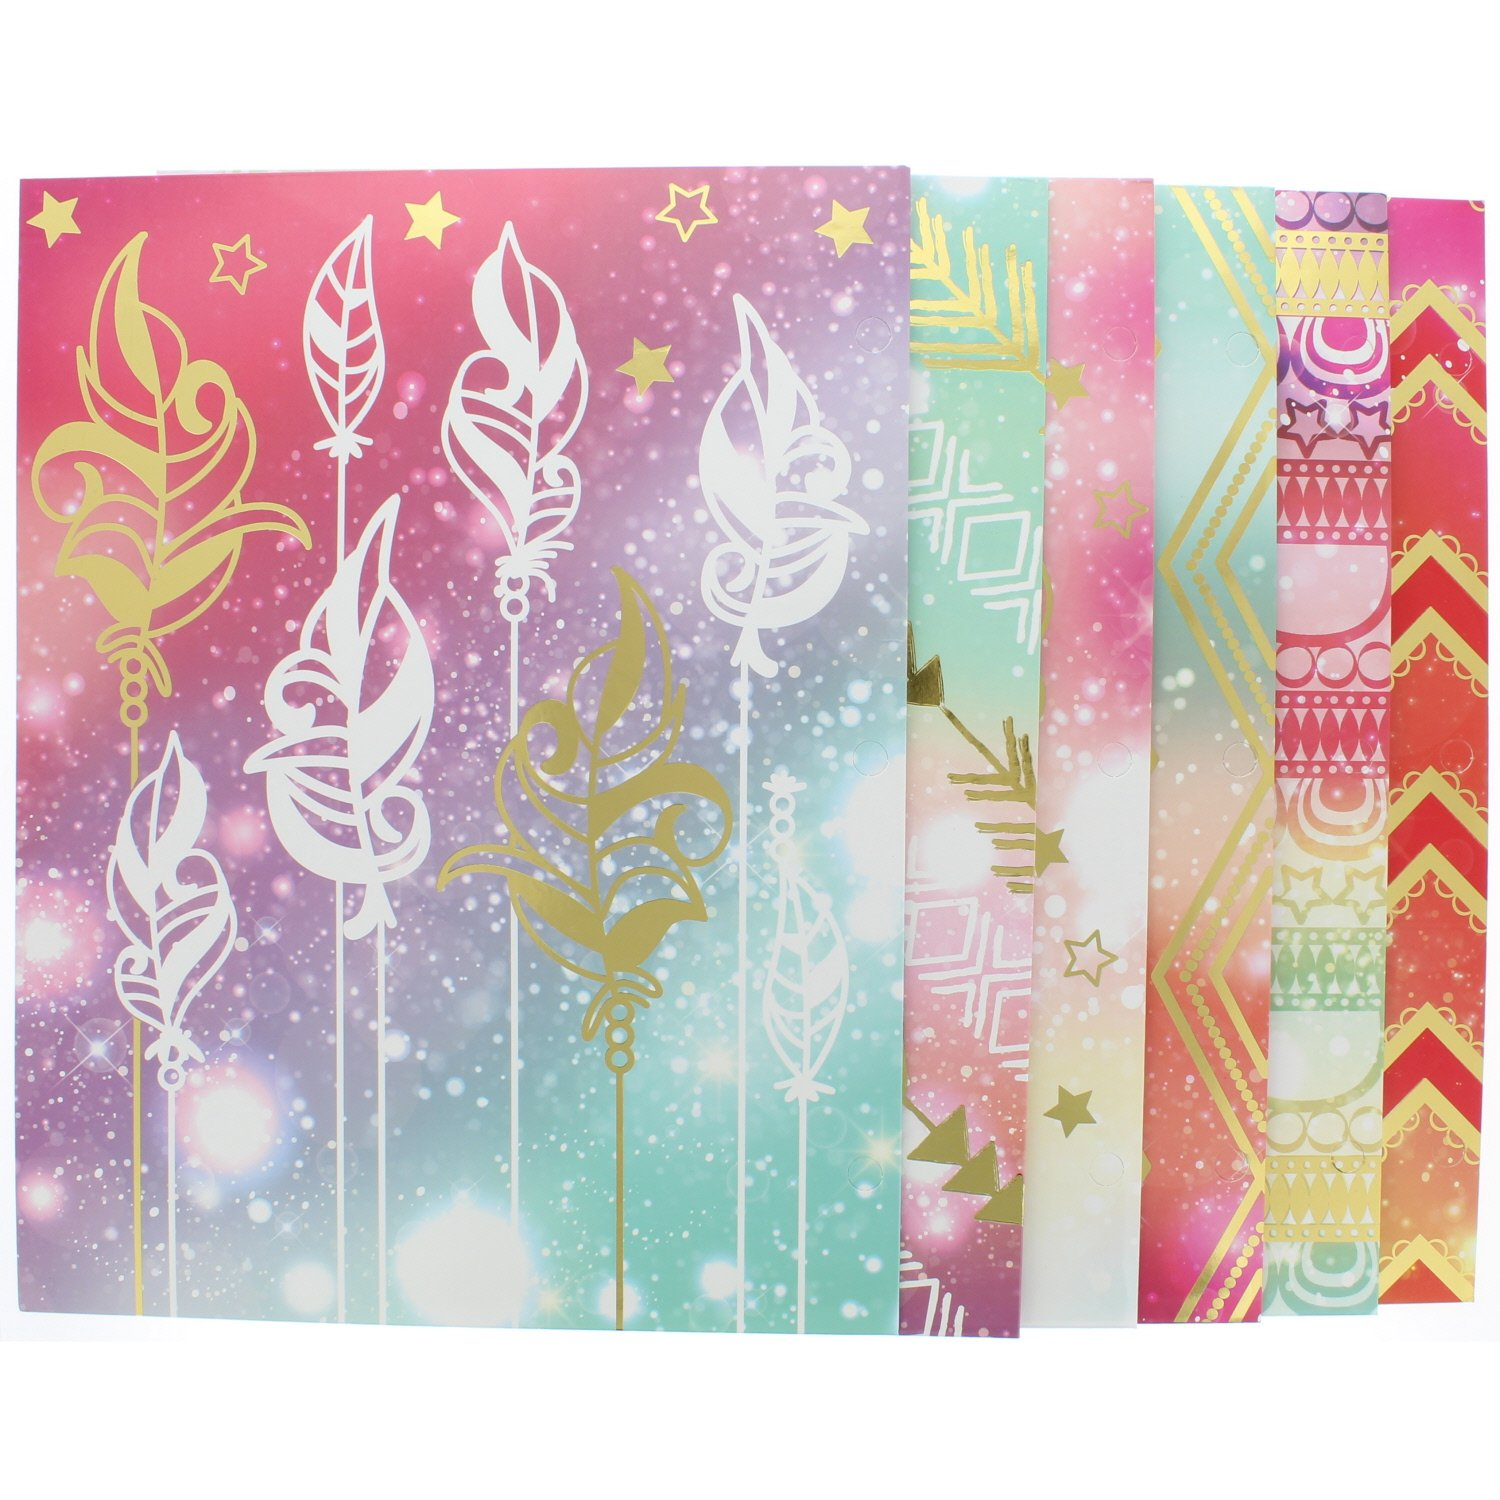 6 Pk. Useful Universe Promarx Tribal Daydream Portfolio, Two Pocket File Folder, Up To 100 Sheets, Letter Size, Assorted Designs by Useful Universe